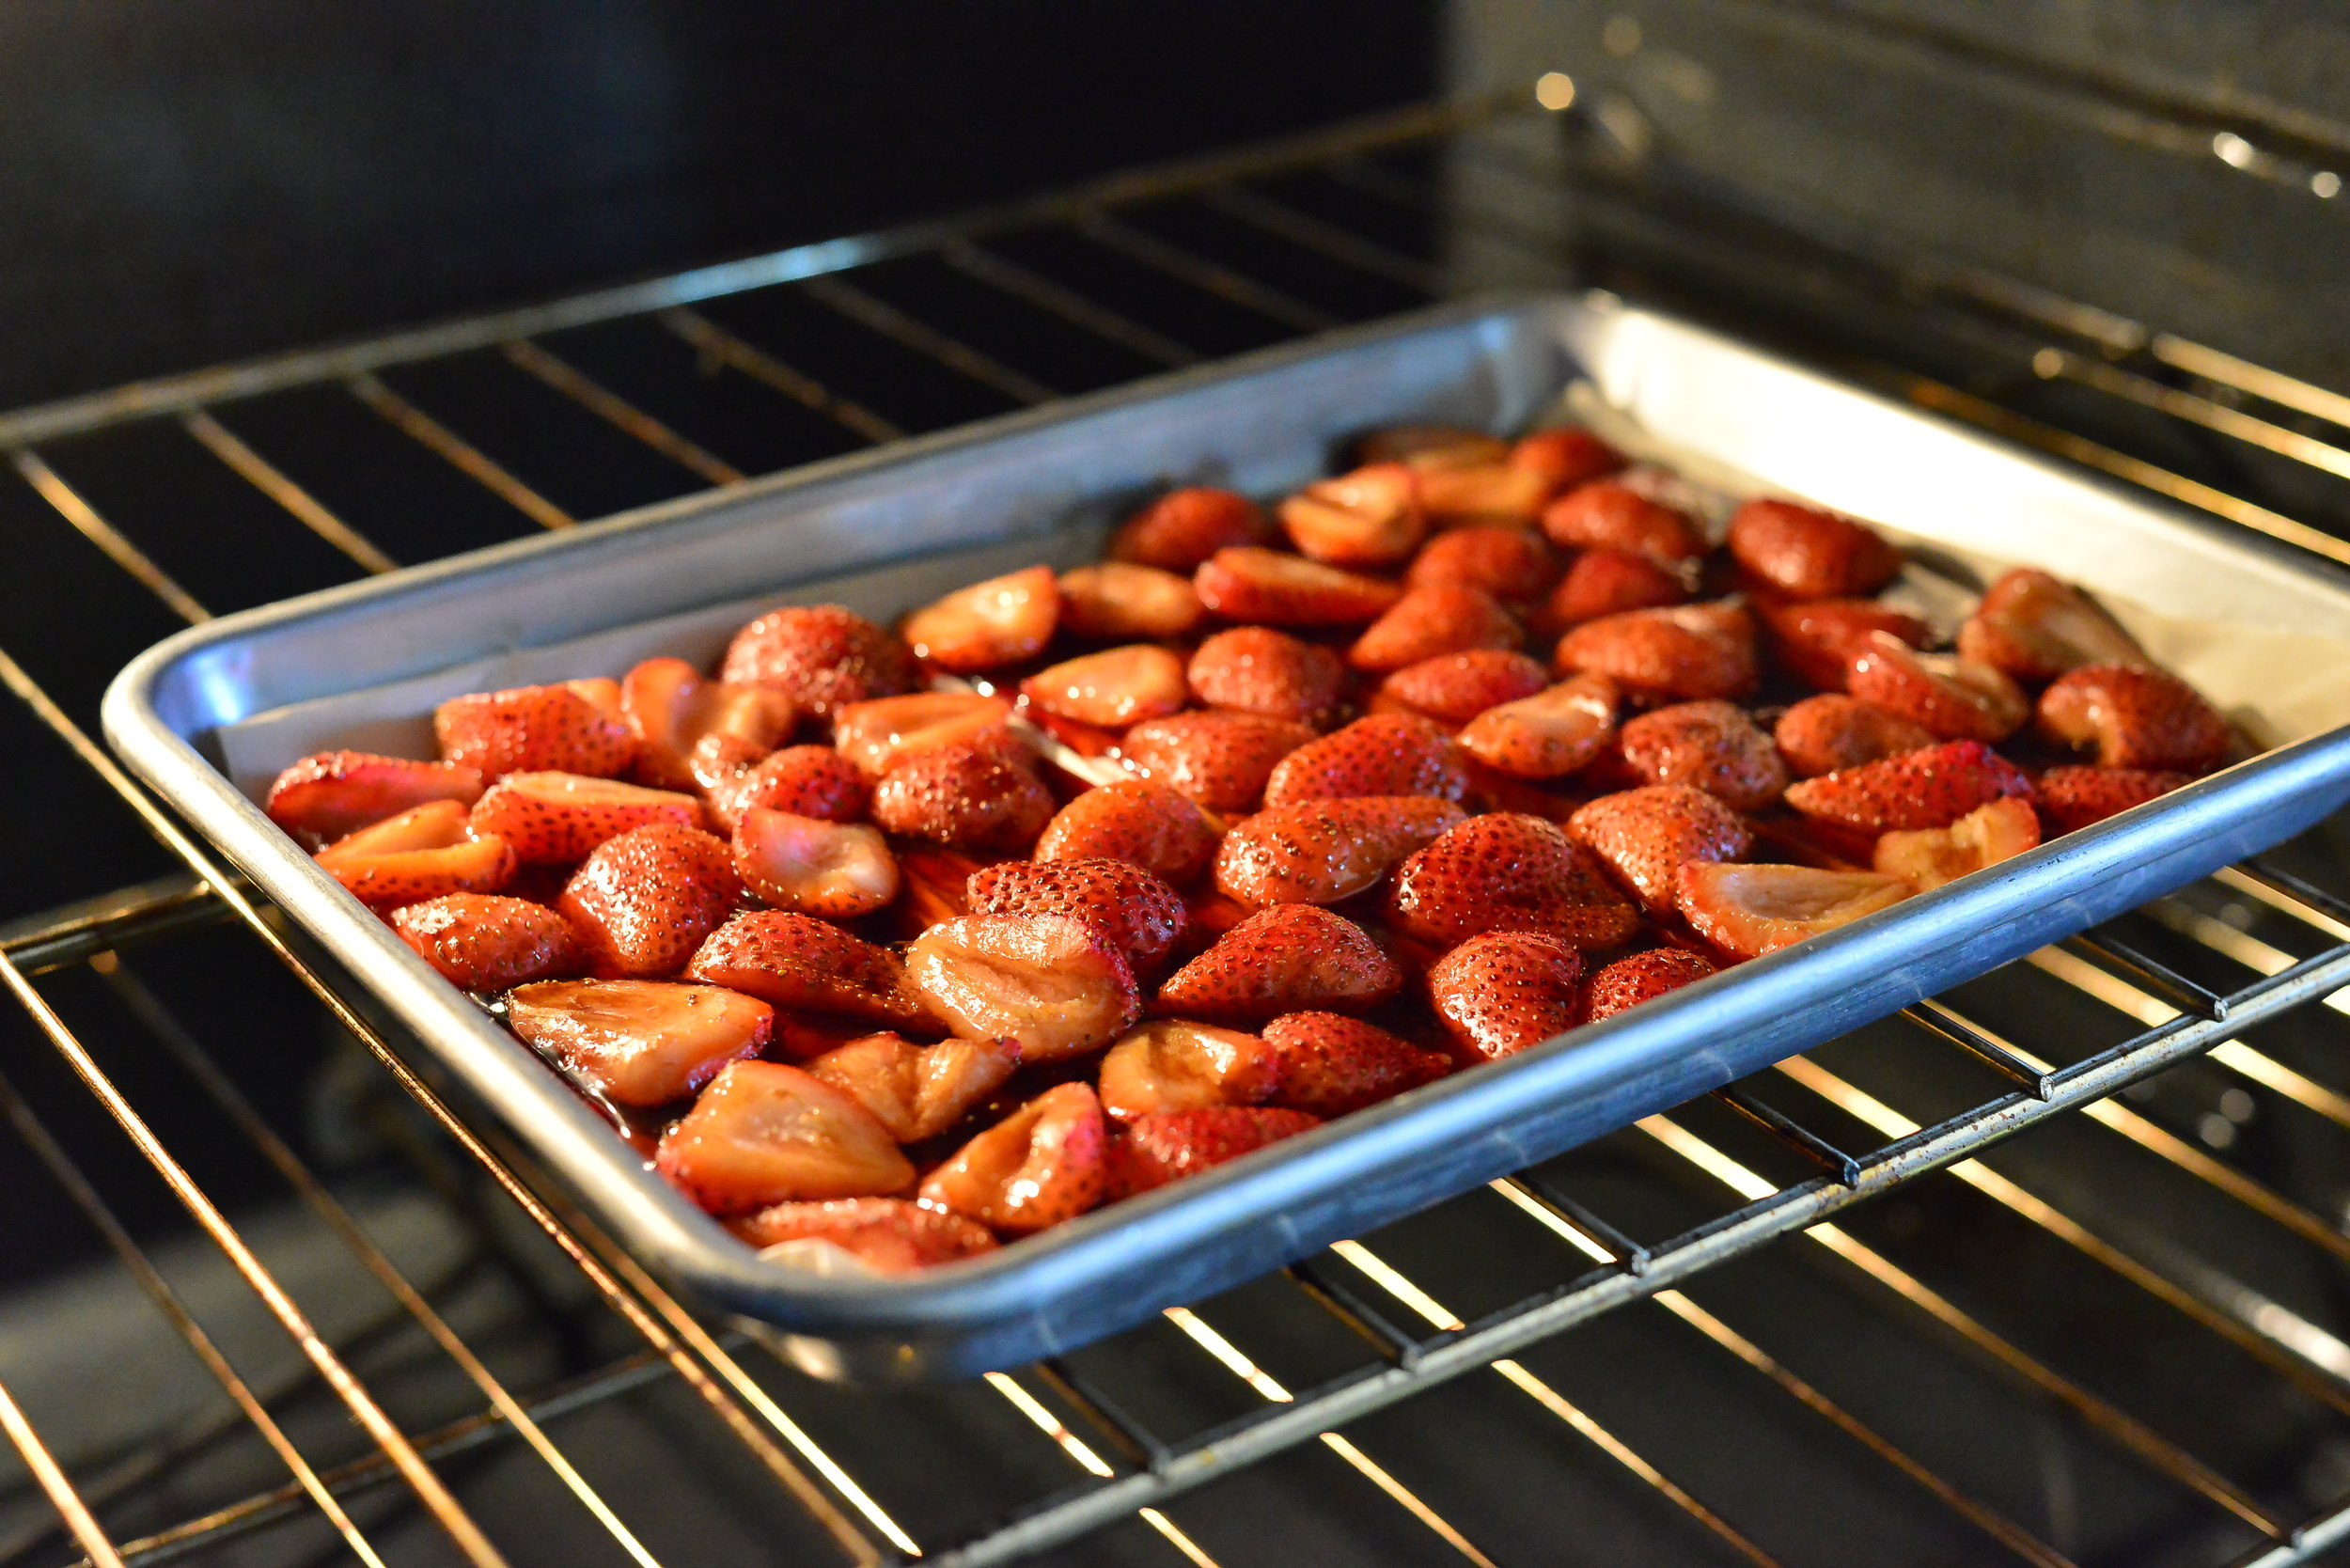 Roasting strawberries that have been dressed with honey and balsamic reduction brings out a rich, sweet flavor. A must try!